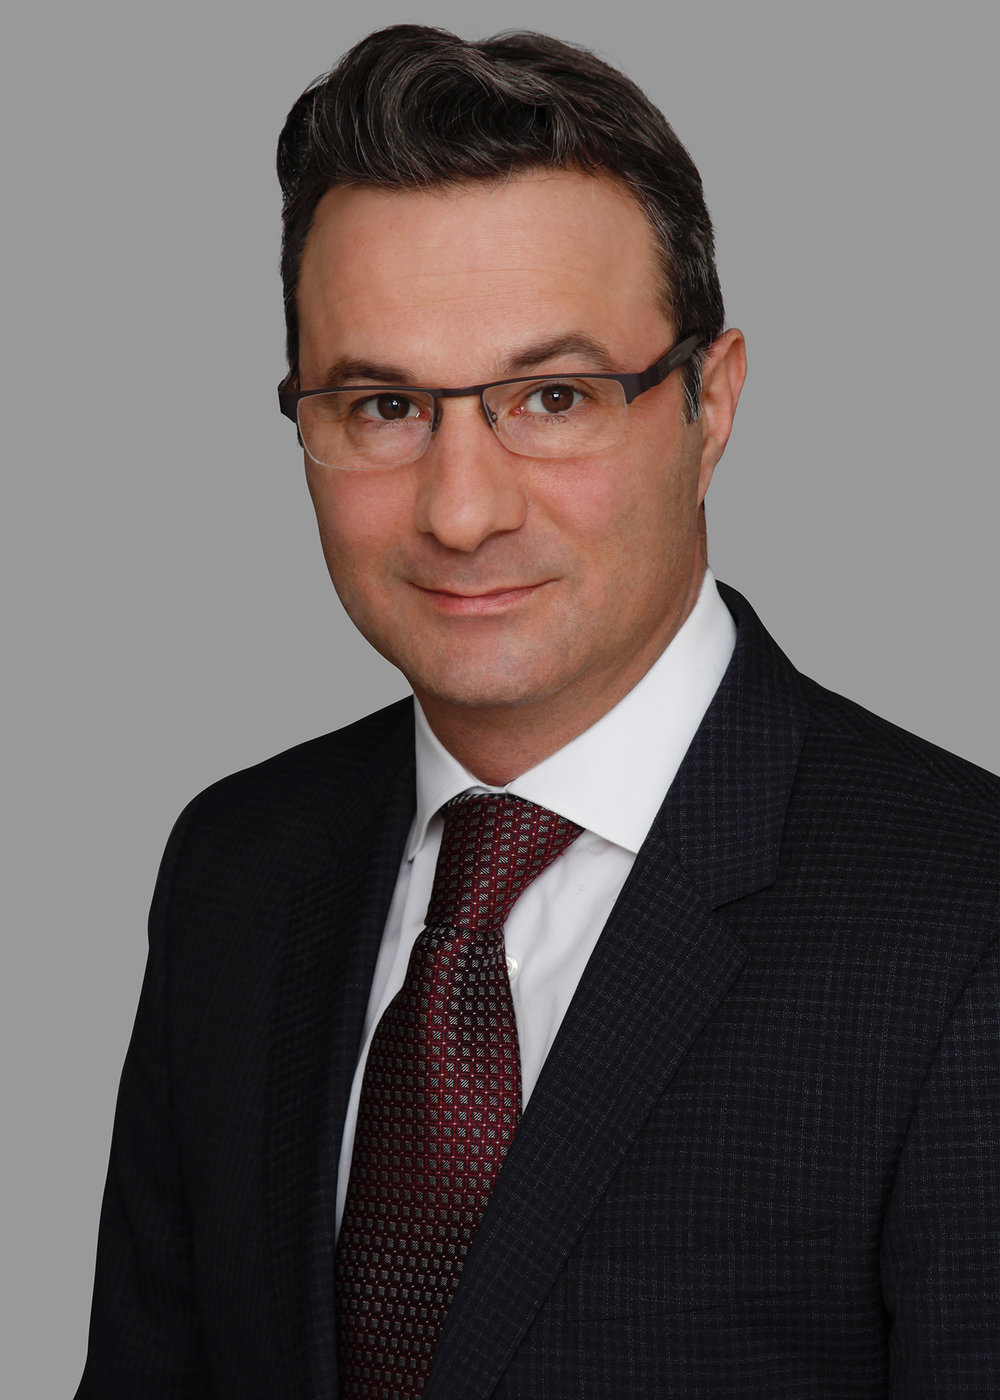 GAETANO COSCIA  Sr. Vice President, Mortgage Origination